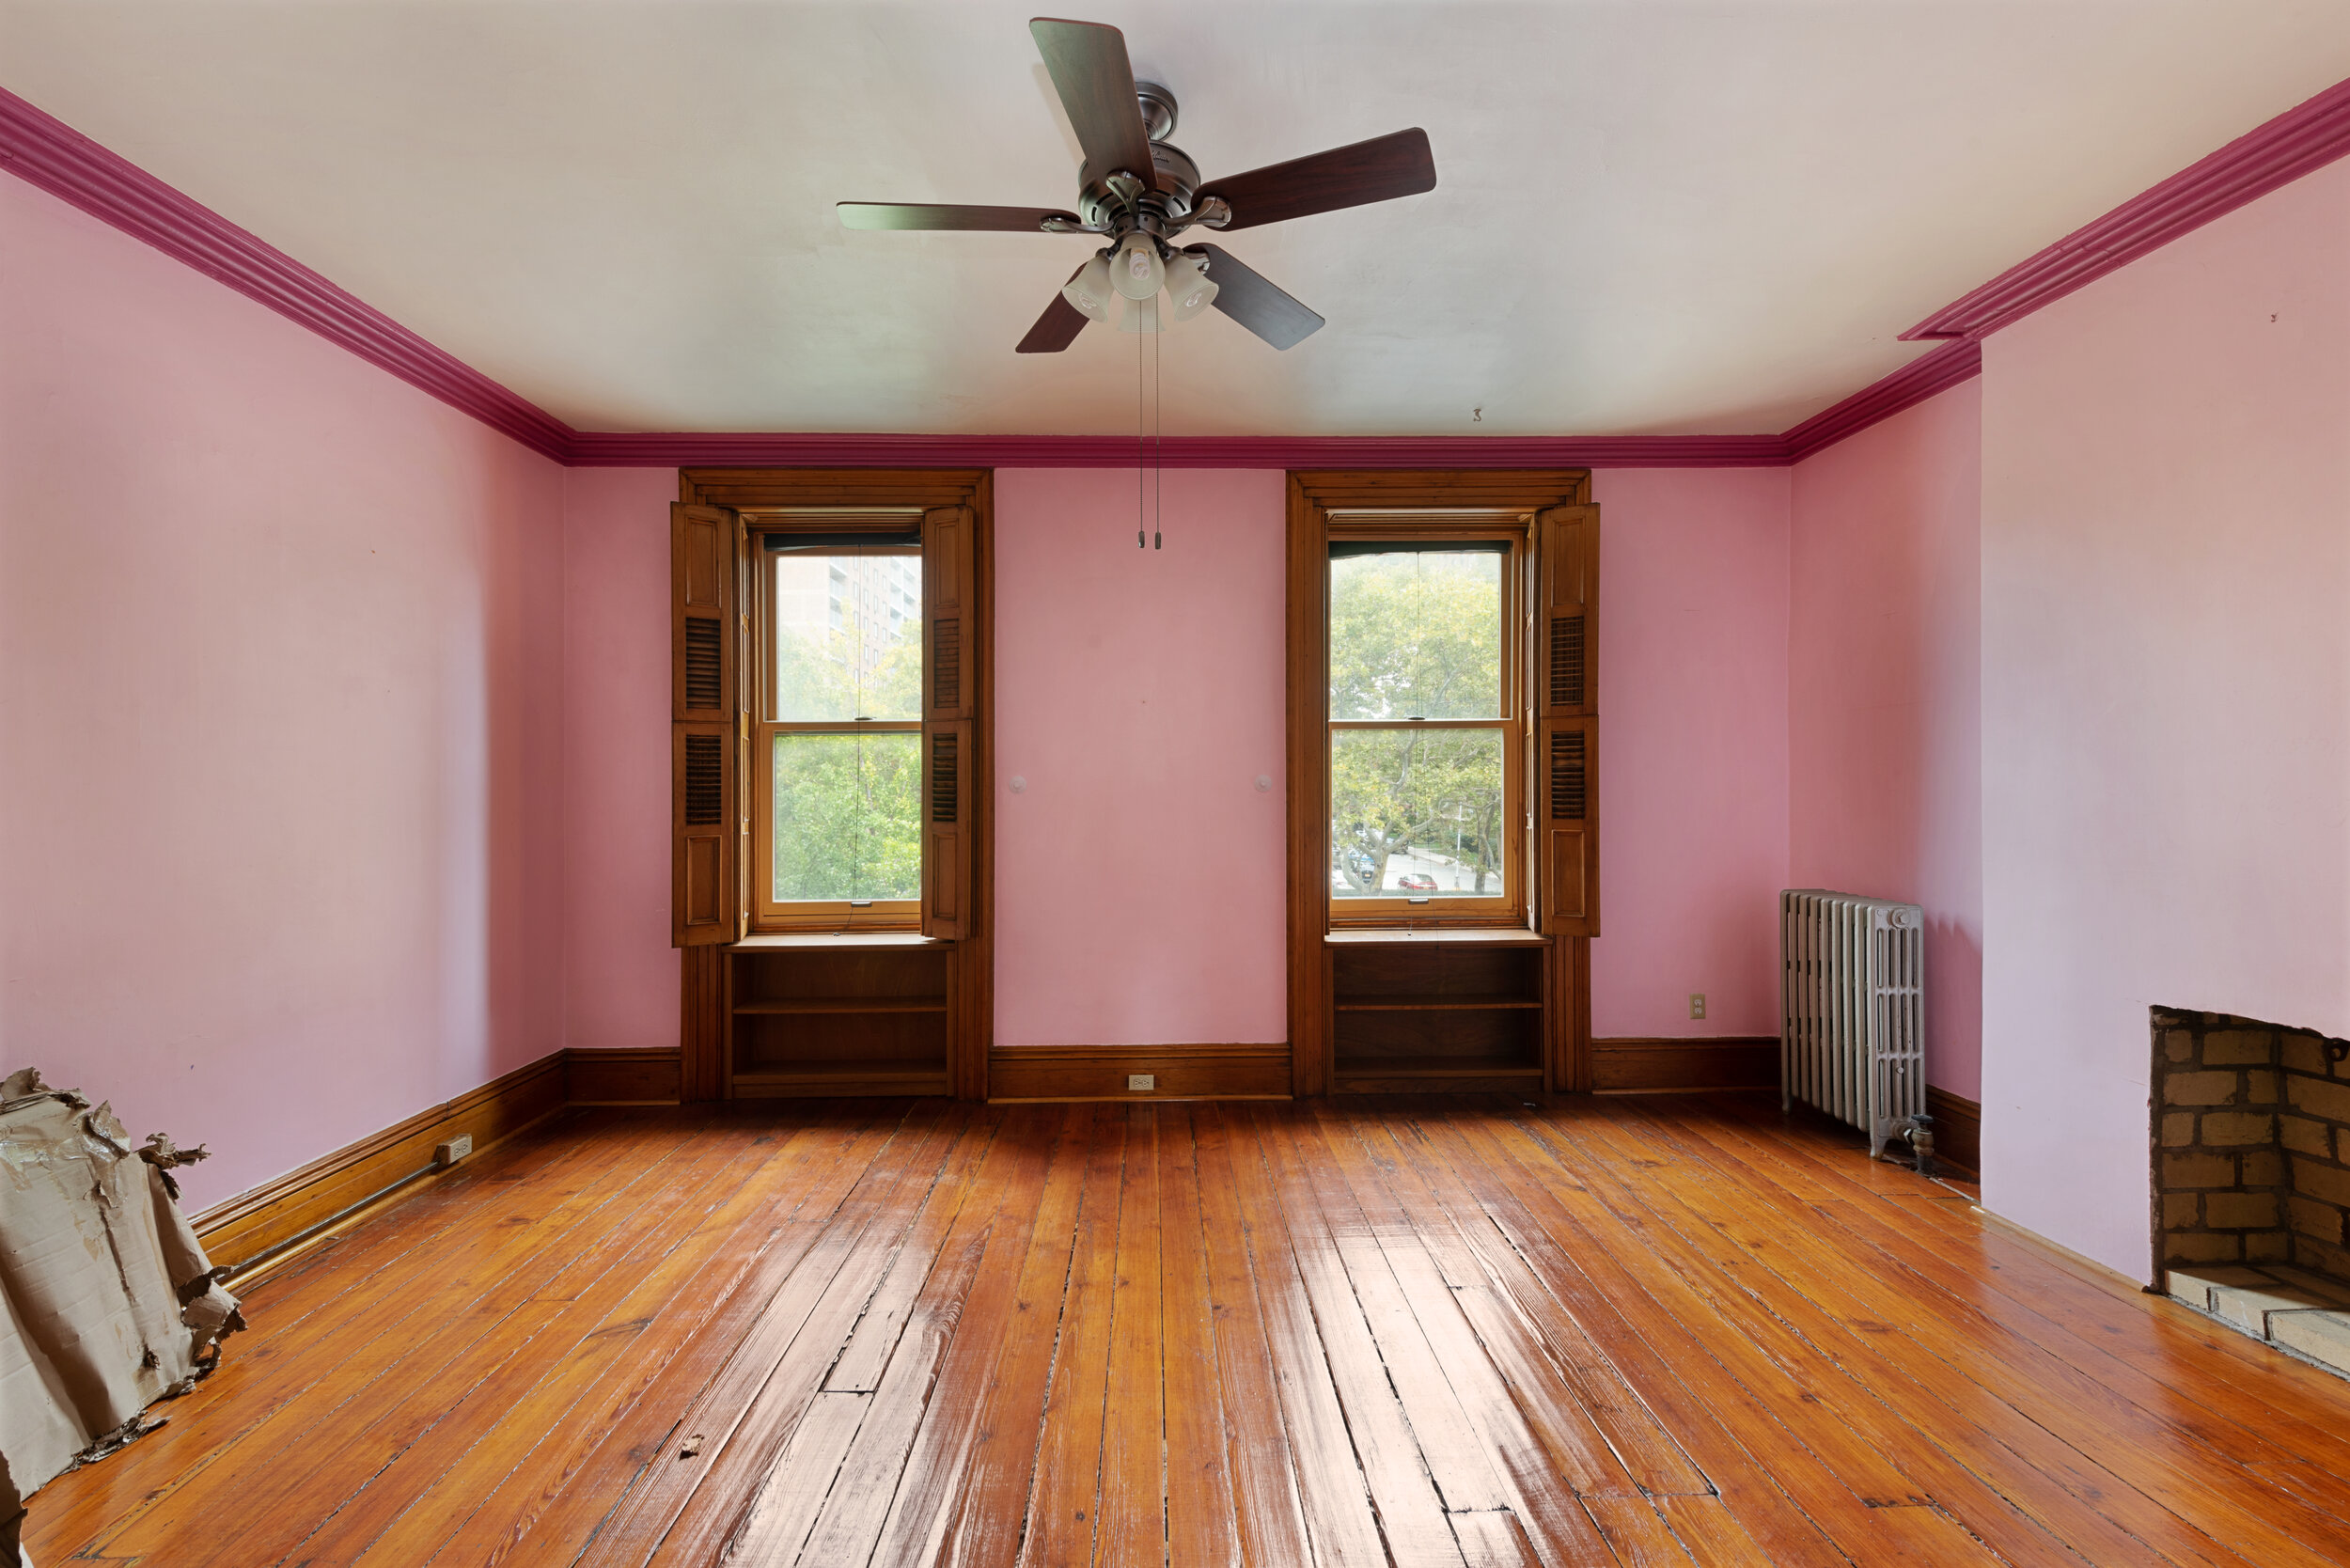 One of the four bedrooms in the home, pre-renovation.